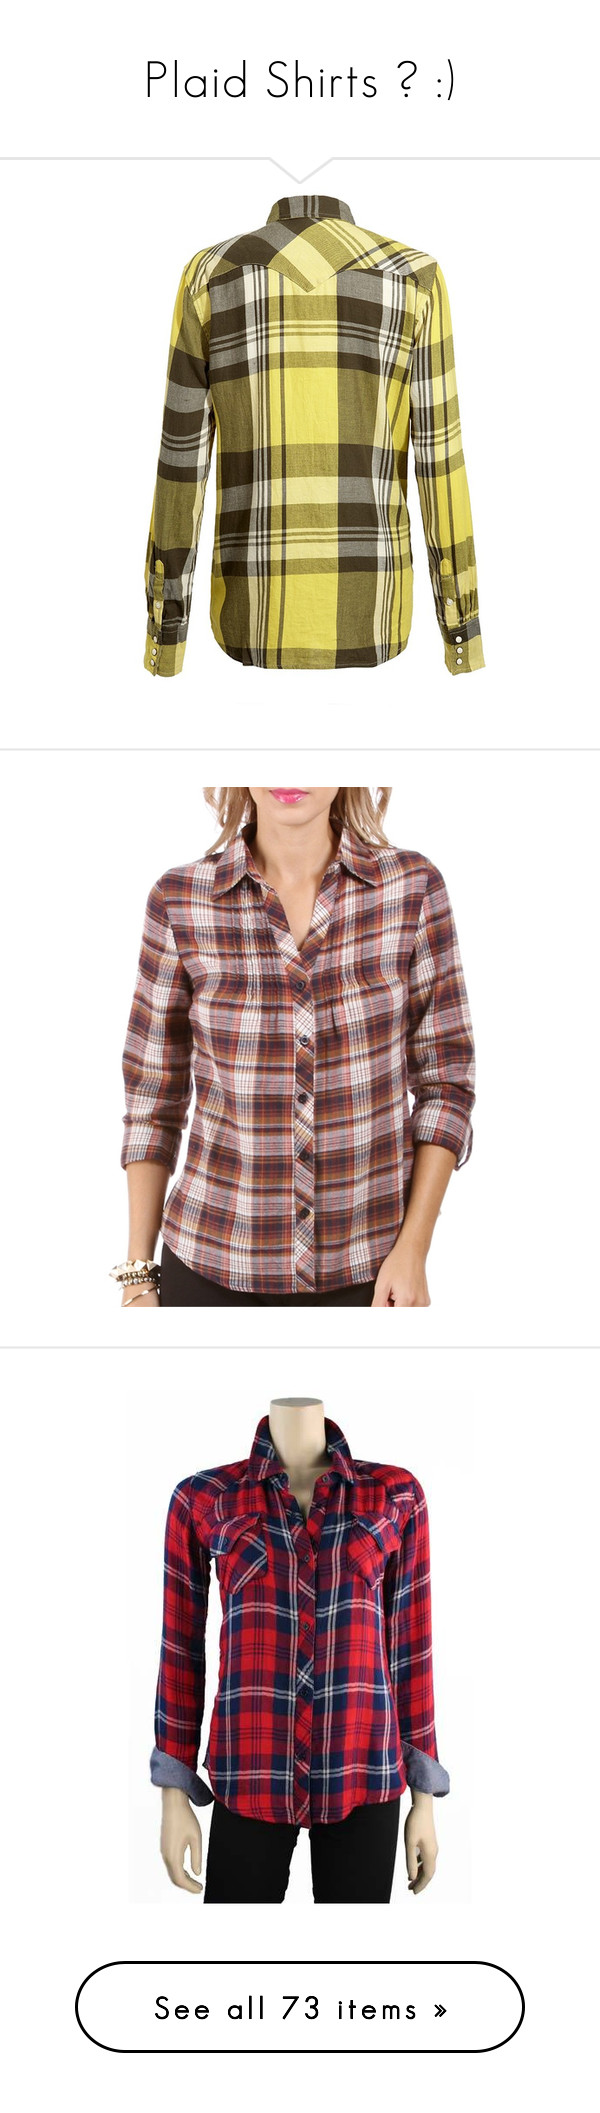 """Plaid Shirts ♥ :)"" by taltul123 ❤ liked on Polyvore featuring tops, cowboy shirt, brown shirt, cowgirl shirts, cotton plaid shirt, button shirts, blouses, cotton shirts, long sleeve tops and long sleeve cotton shirt"